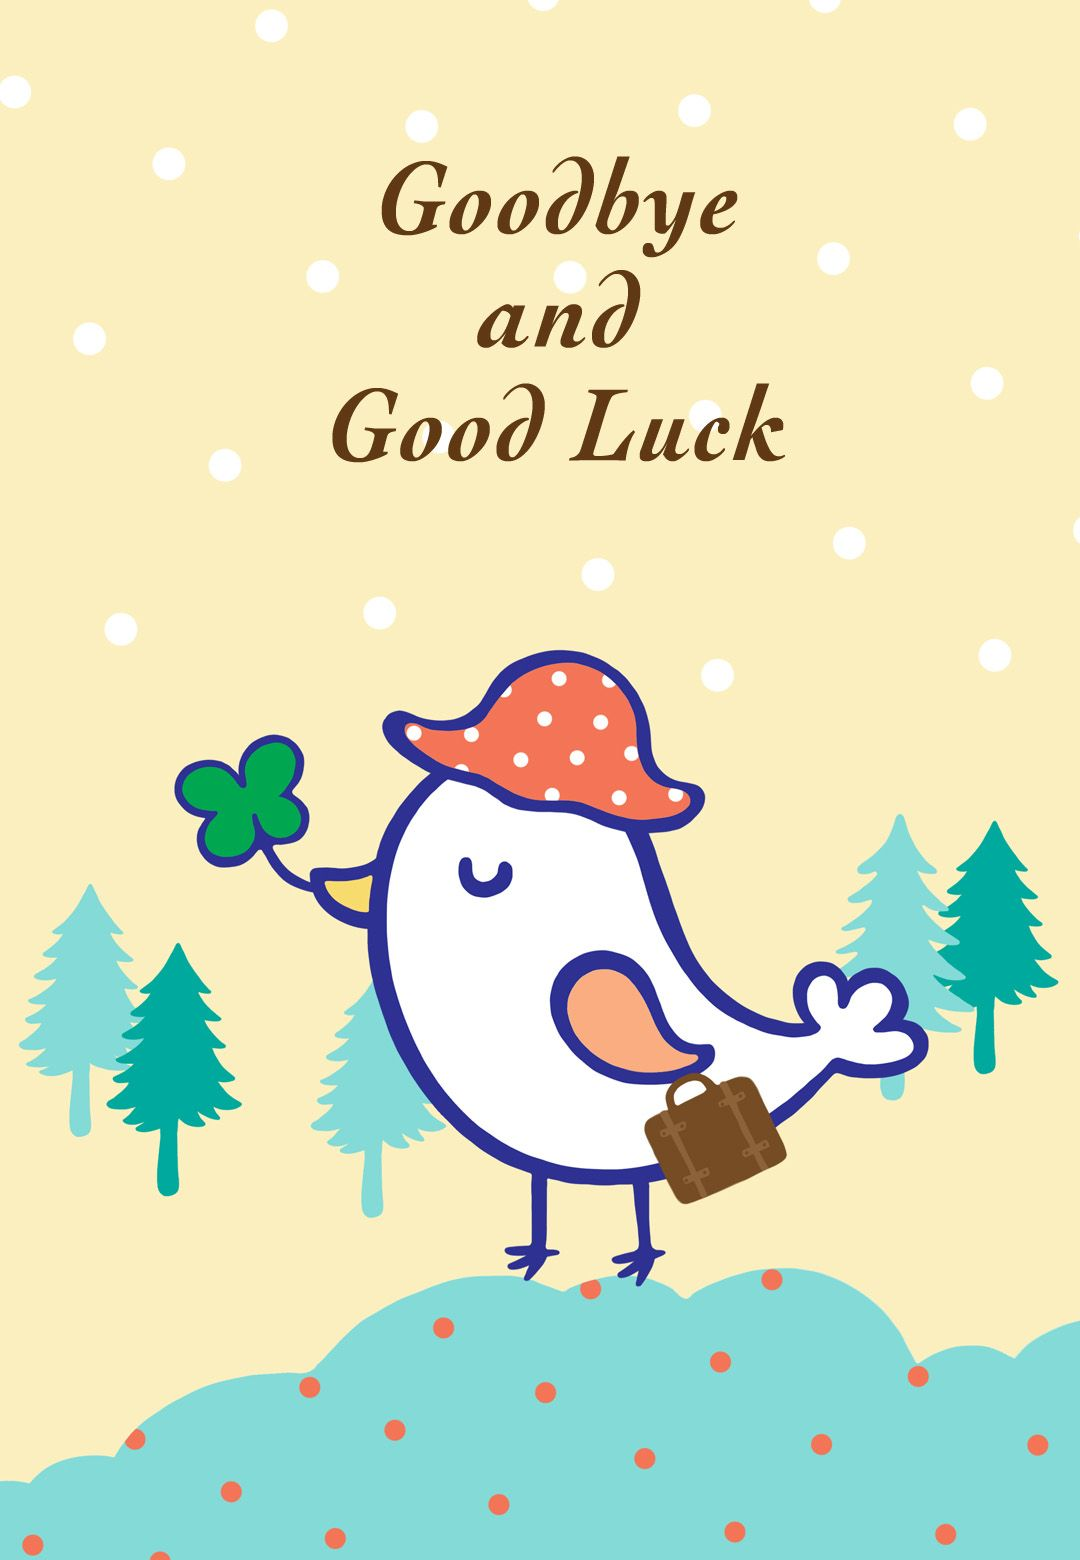 Free printable goodbye and good luck greeting card littlestar free printable goodbye and good luck greeting card m4hsunfo